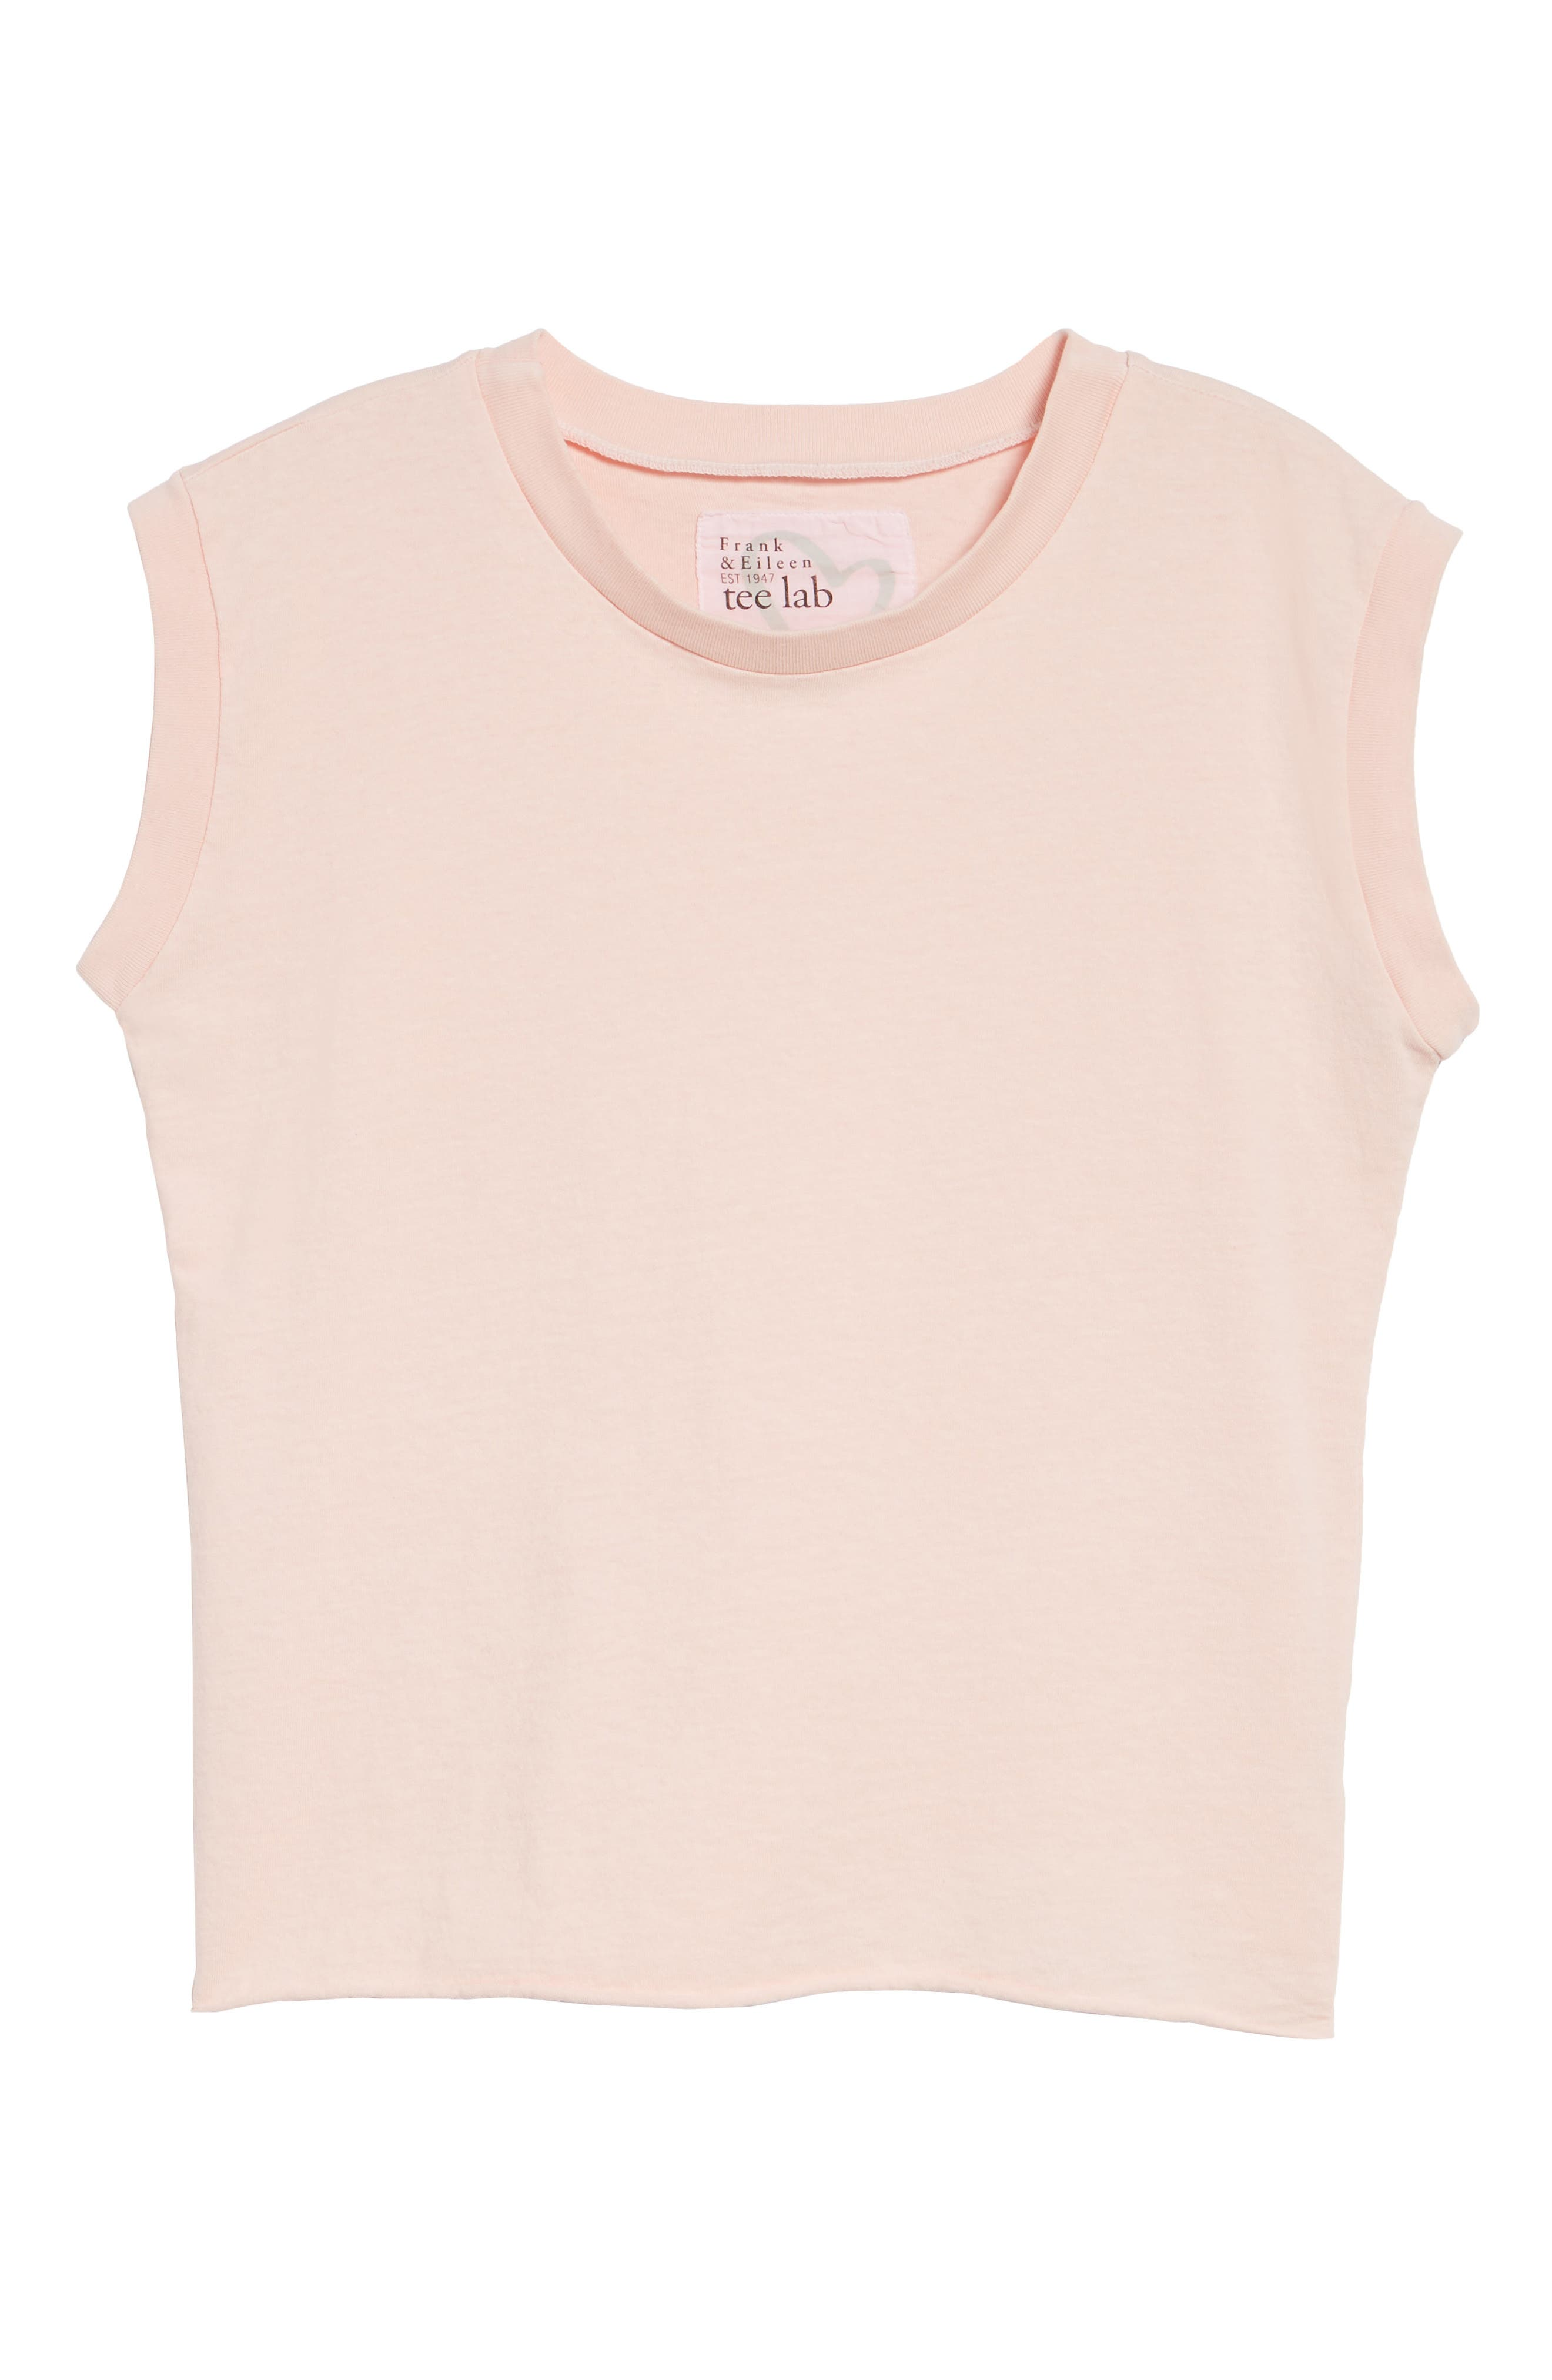 Muscle Tee,                             Alternate thumbnail 7, color,                             Love Letter